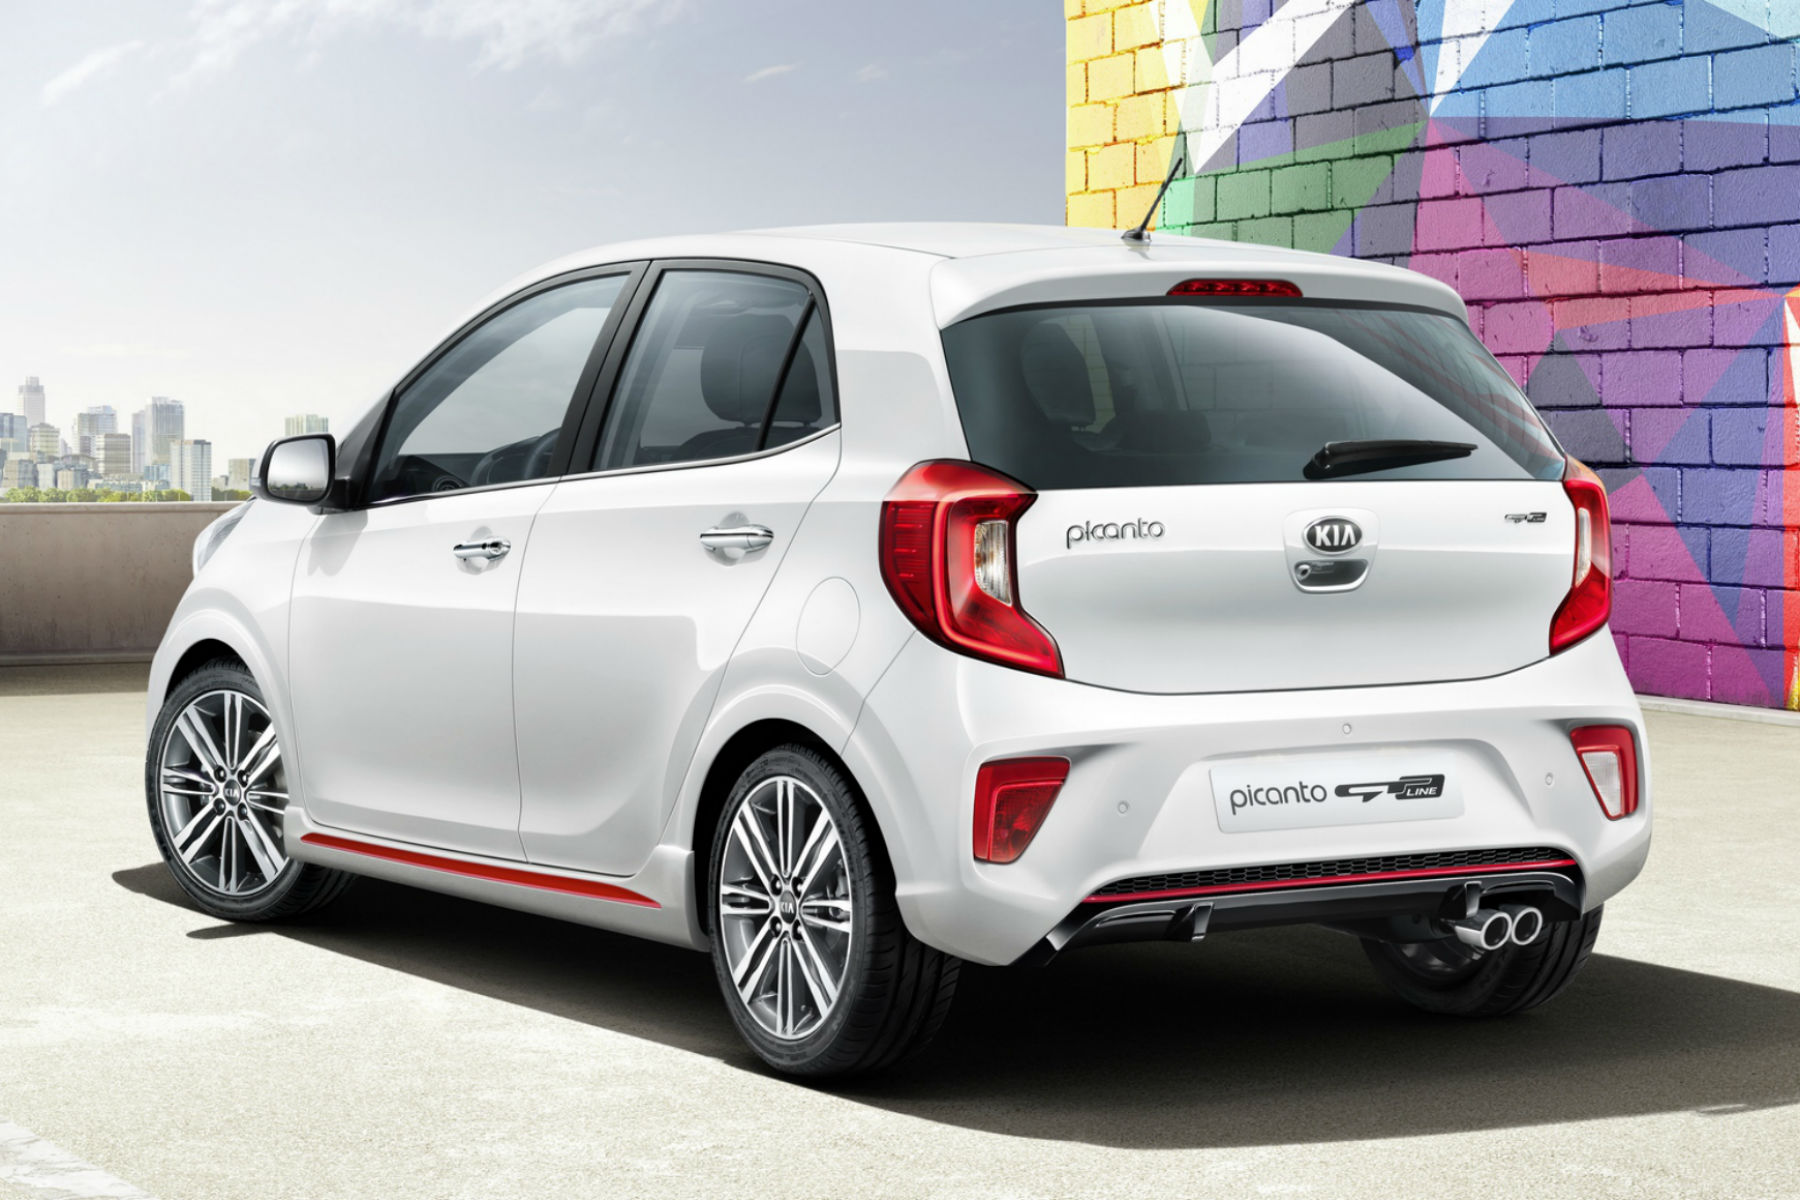 2017 Kia Picanto revealed ahead of Geneva Motor Show debut